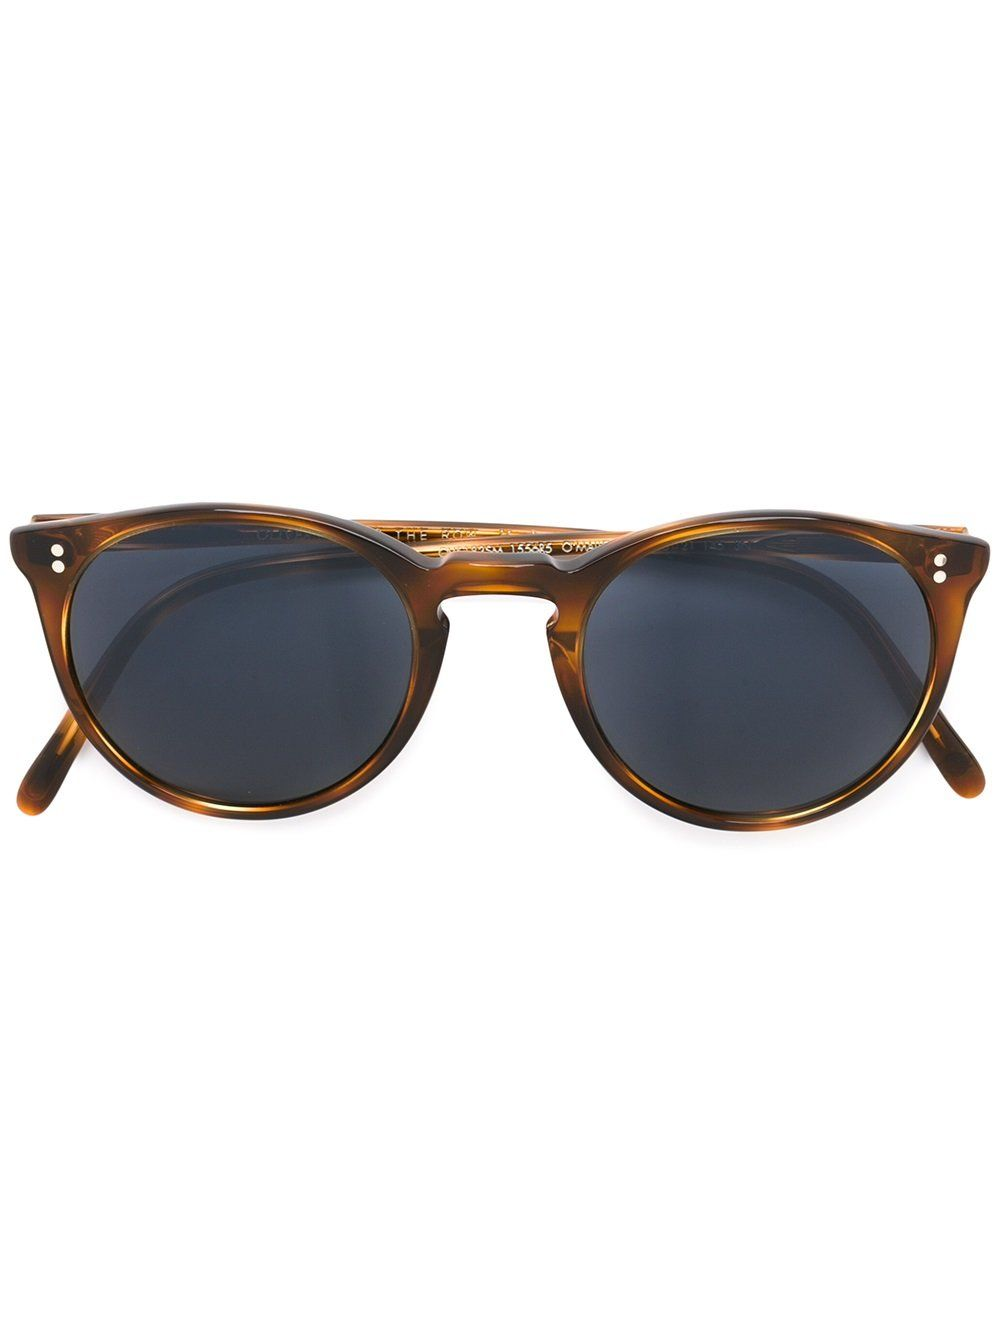 91f9bf7850f OLIVER PEOPLES X THE ROW COLLECTION  O MALLEY NYC .  oliverpeoples ...